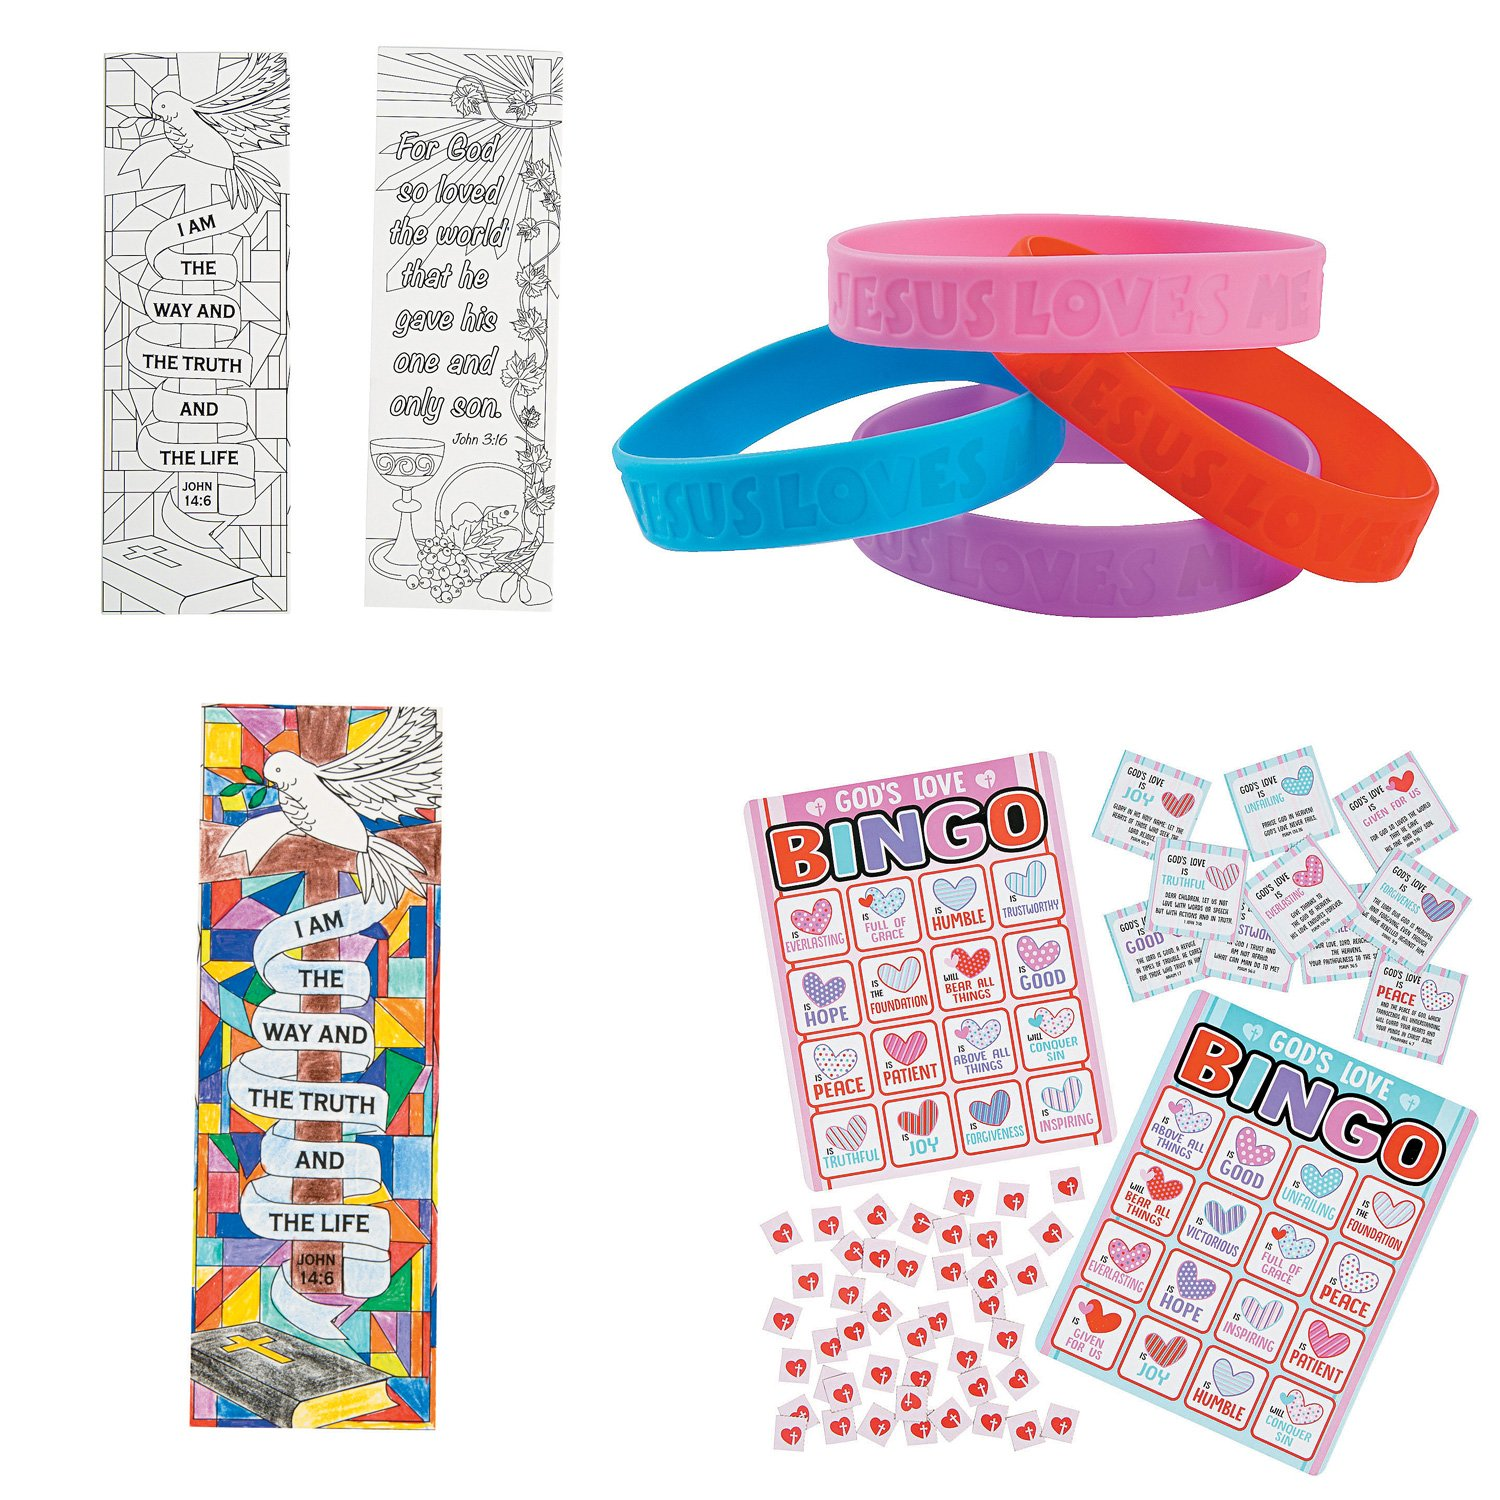 William & Douglas Religious Party Favor Bundle | Christian Gifts, Favors and Games | Jesus Loves Me Rubber Bracelets, Religious Love Bingo Game & Color Your Own Religious Bookmarks by William & Douglas